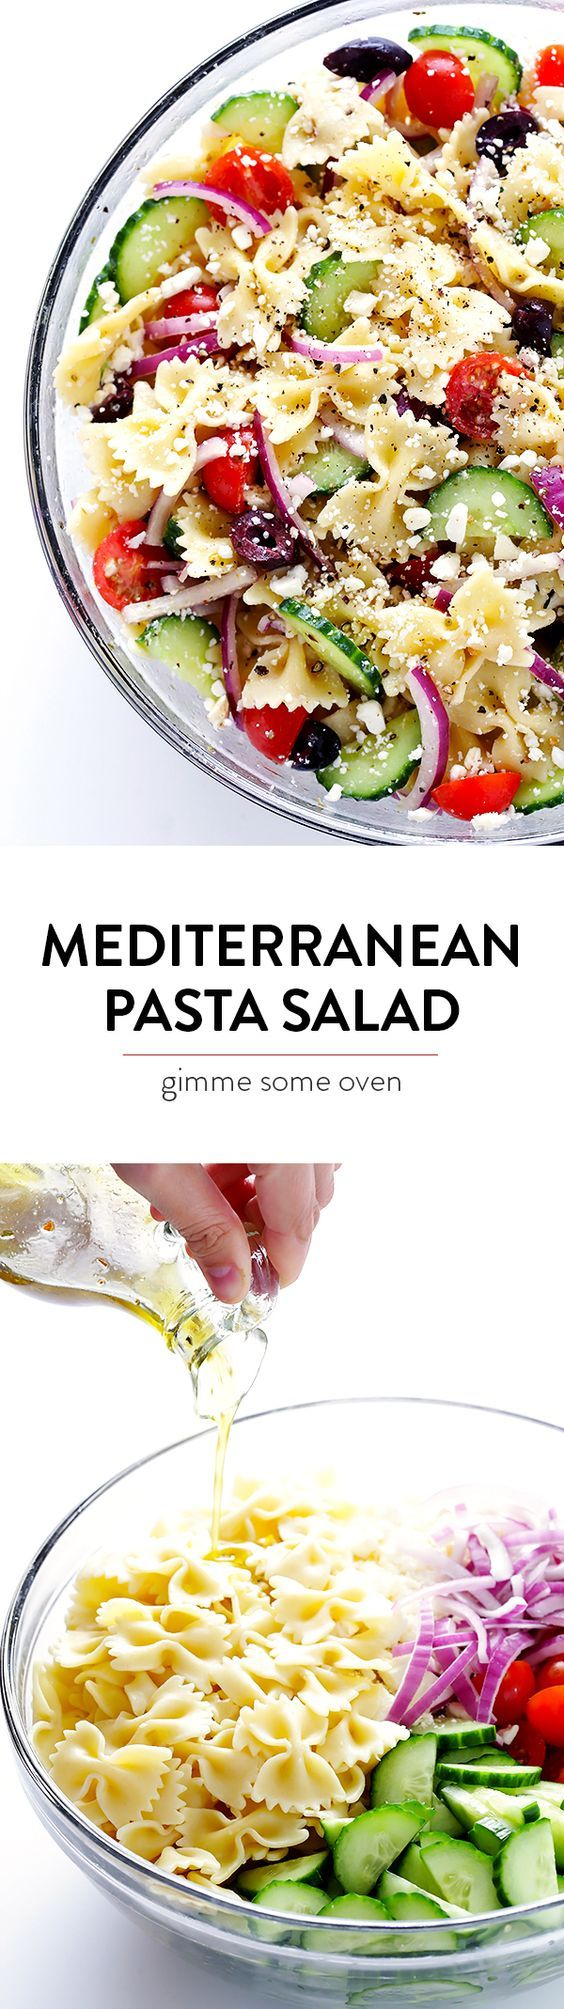 Mediterranean Pasta Salad  quick and easy to make and tossed with a tasty lemonherb vinaigrette